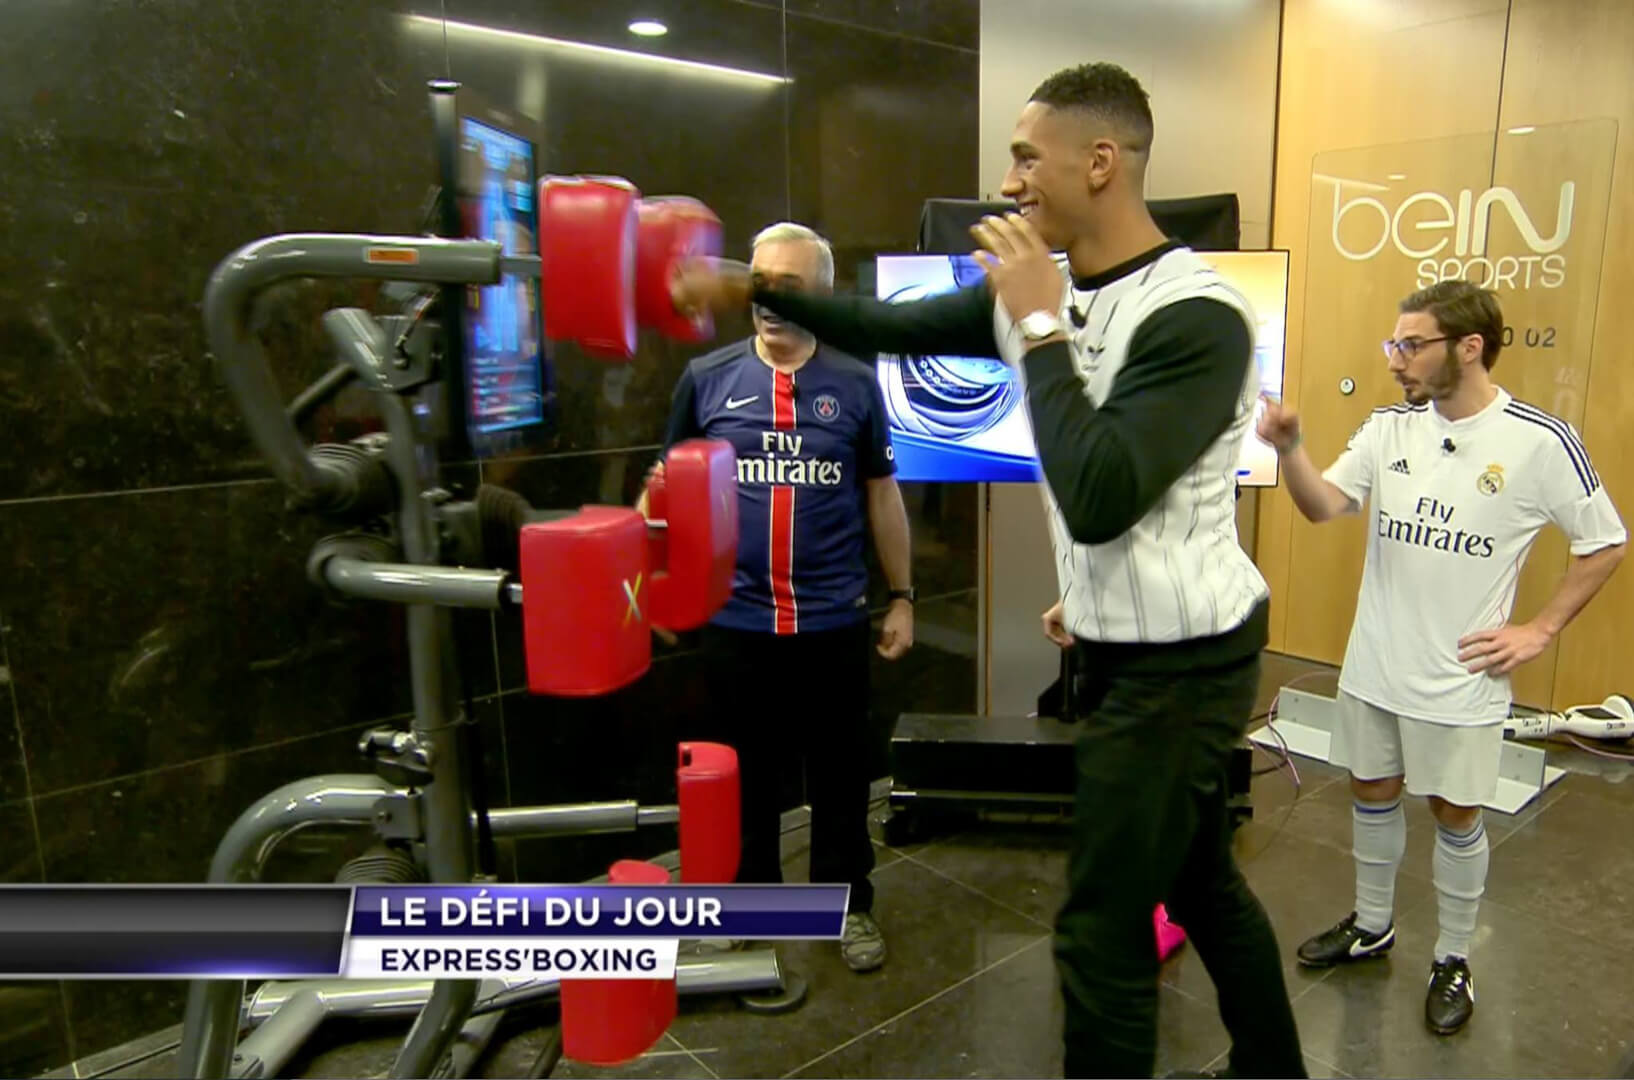 Animation émission tv bein sports expresso-1 - Hitech Events